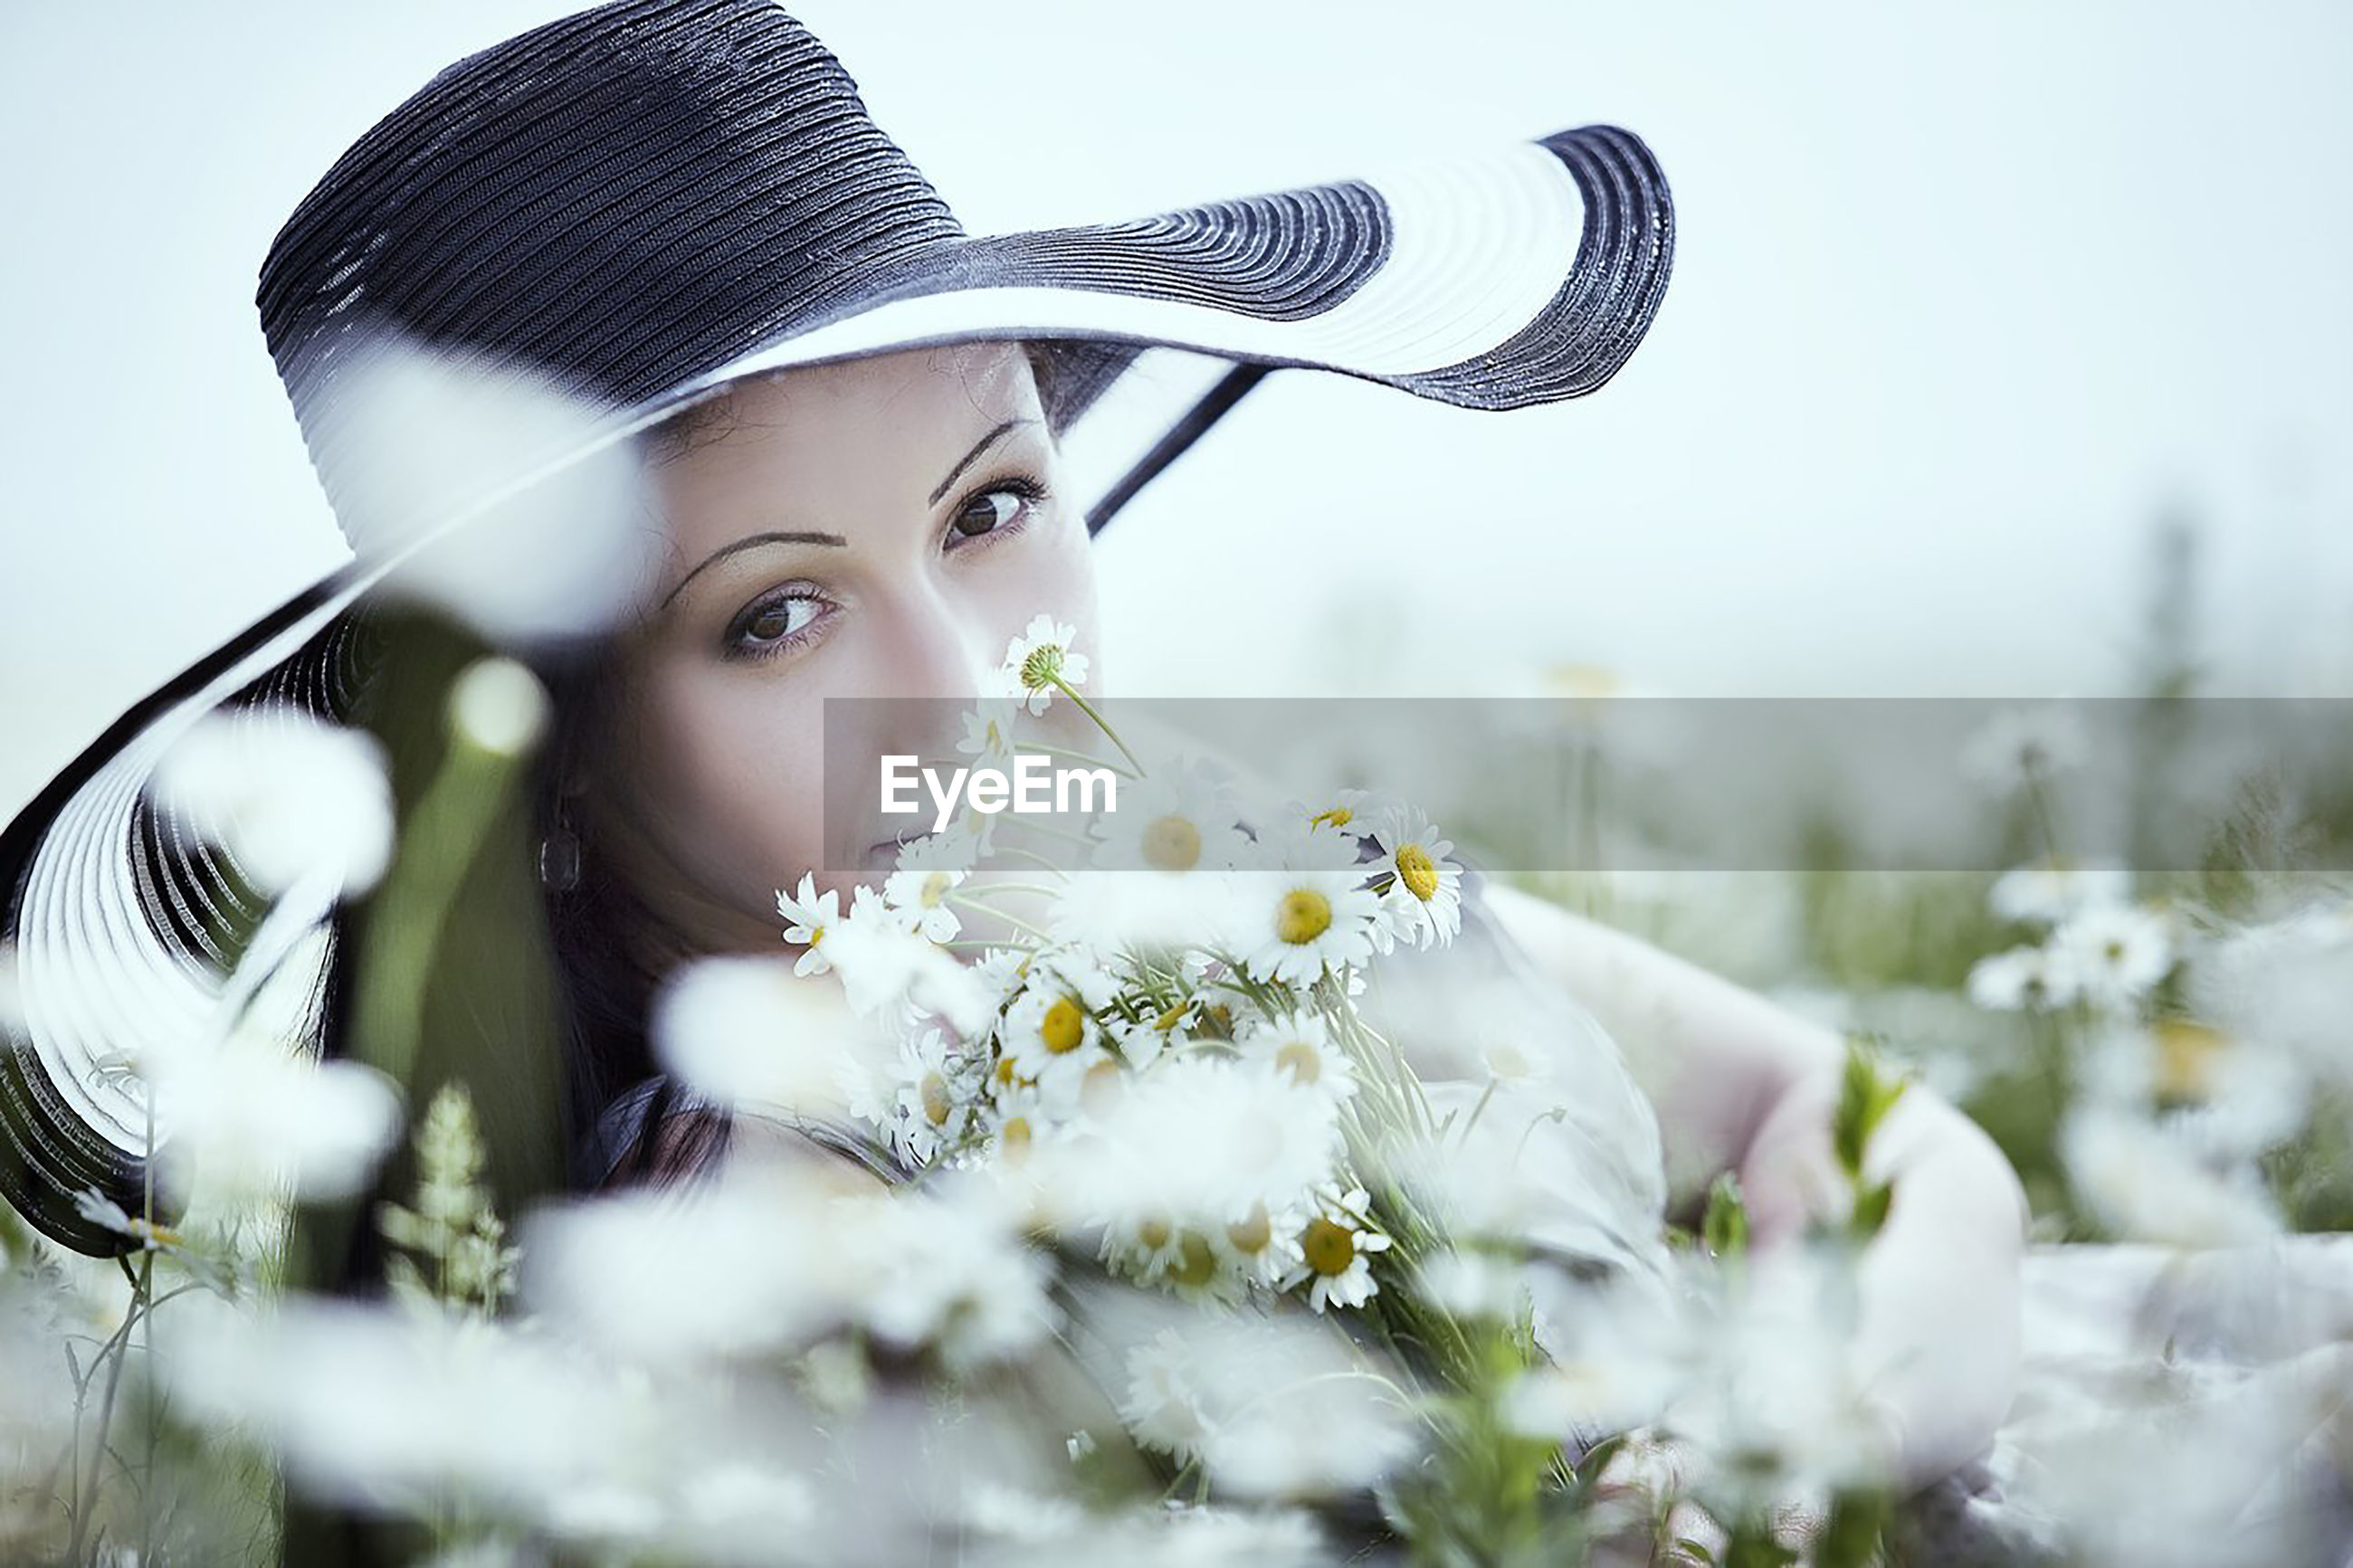 Portrait of woman with flowers on field